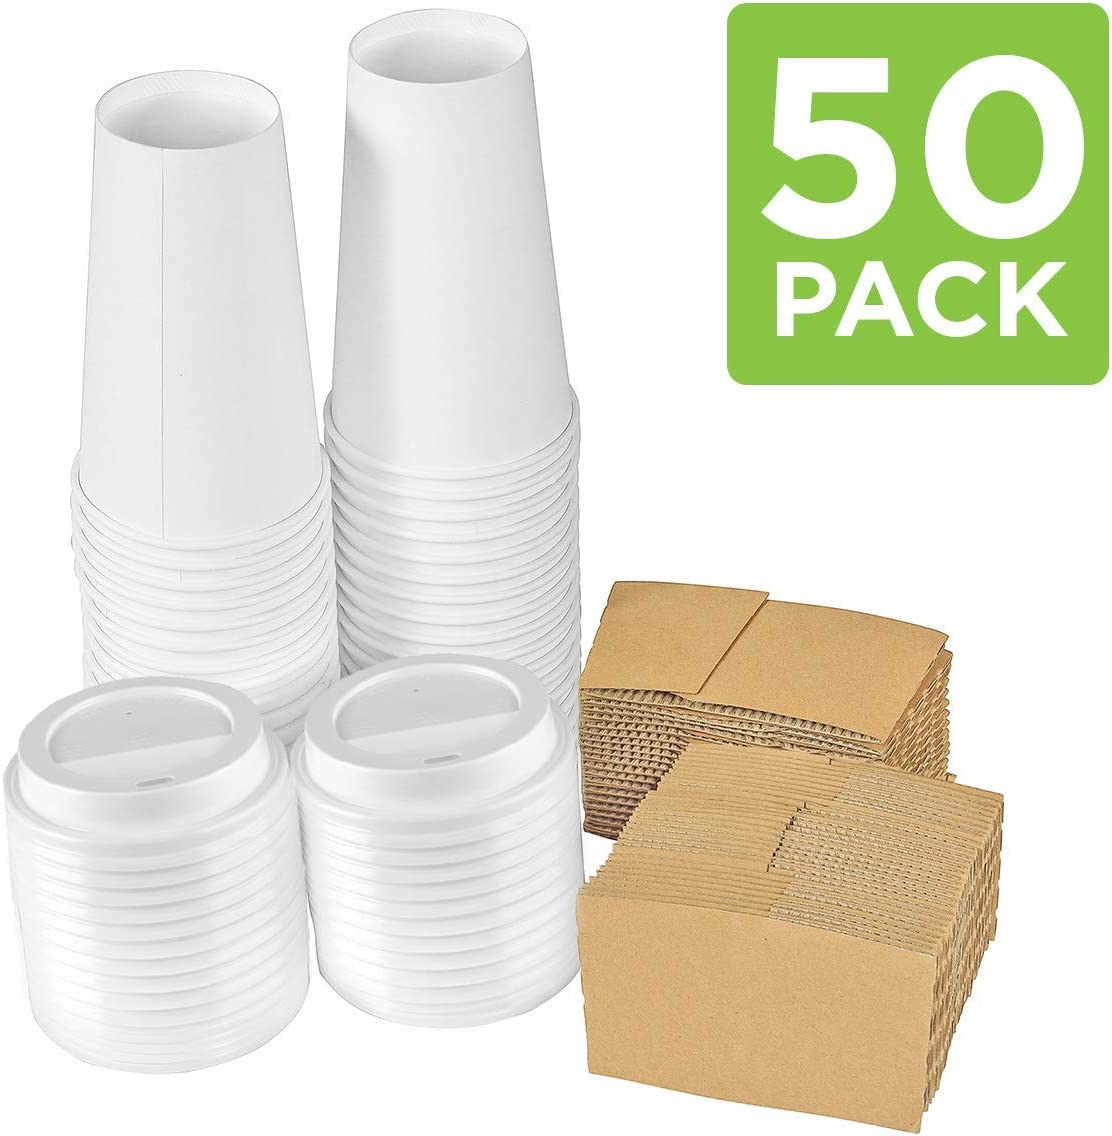 Disposable Coffee Cups with Lids 16 oz – Pack of 50, Cold/Hot Beverage Paper Cups with Sleeves